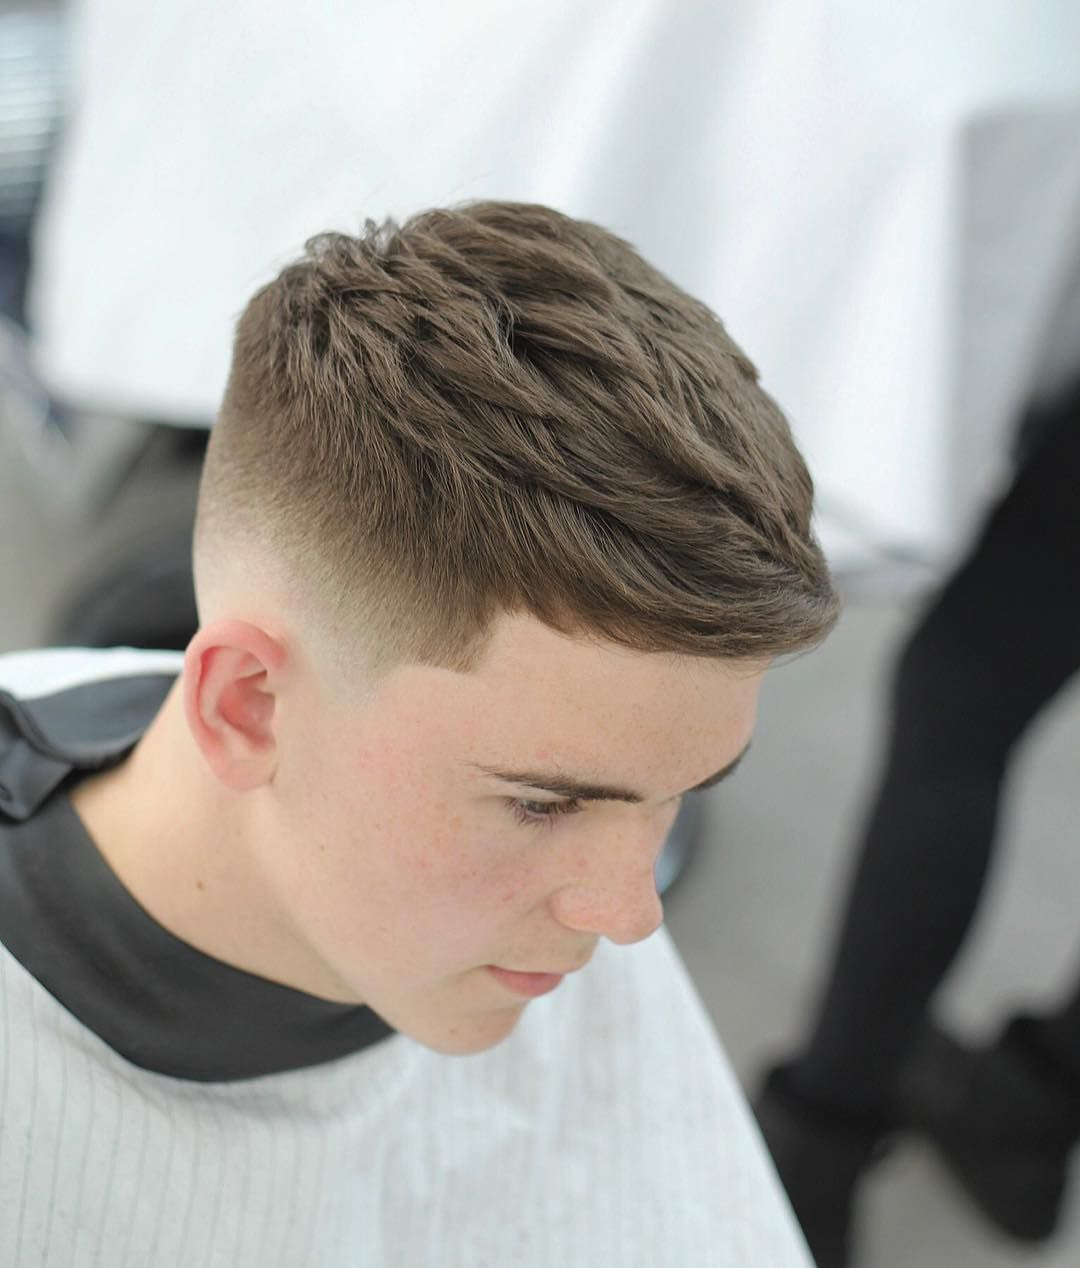 These Are The Best Men S Haircuts And Cool Hairstyles For Men To